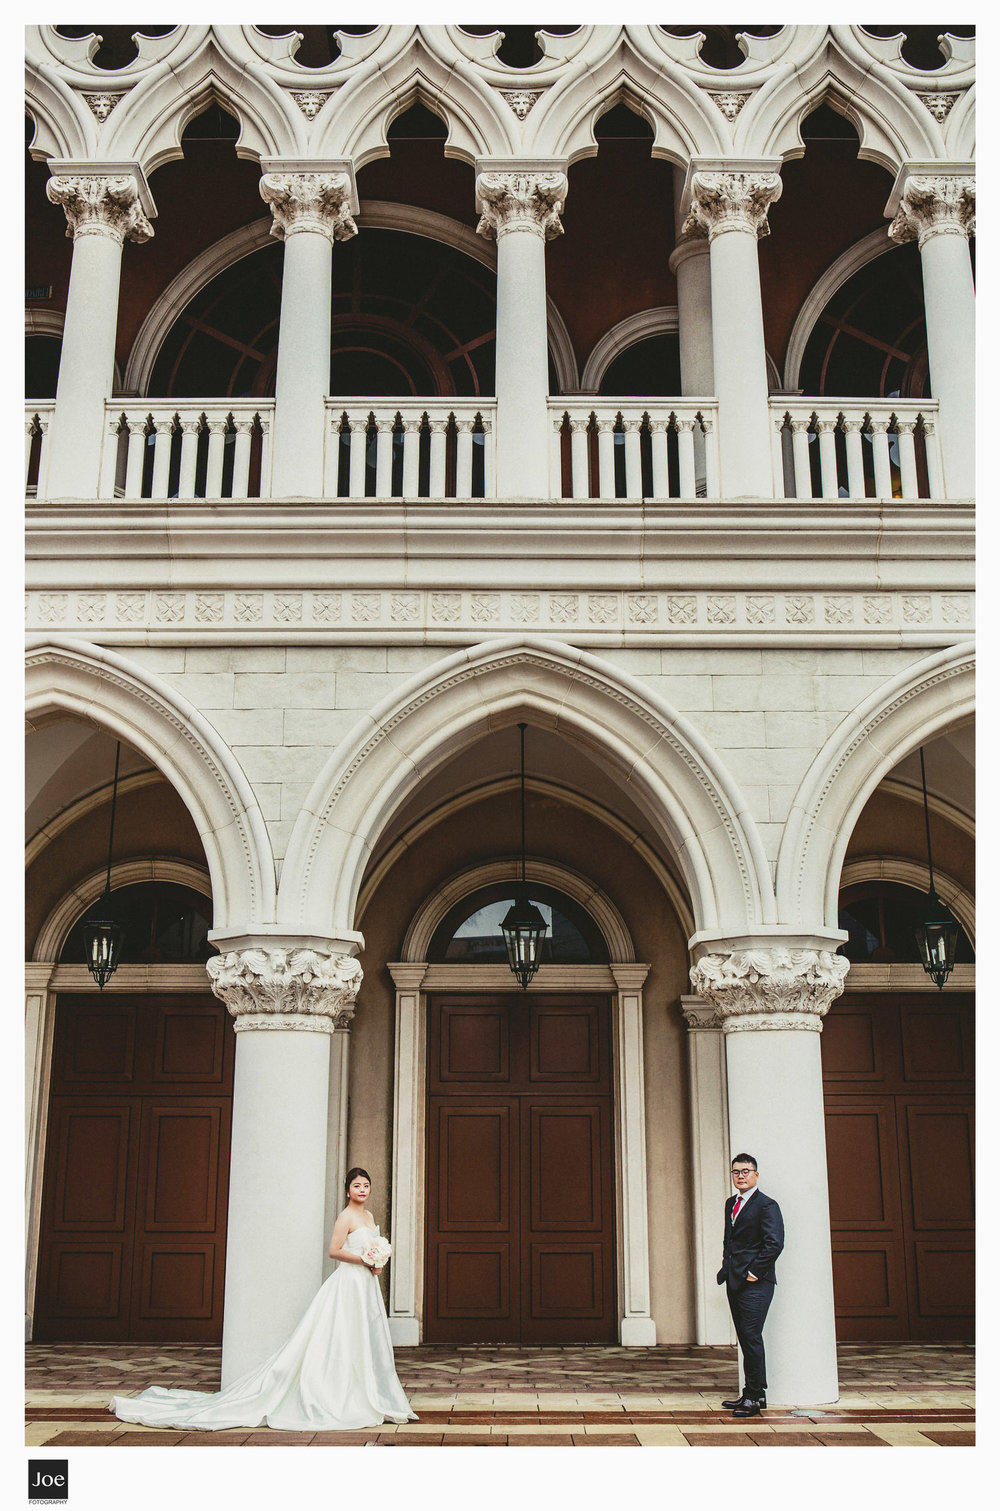 039-venetian-macau-pre-wedding-jie-min-joe-fotography.jpg